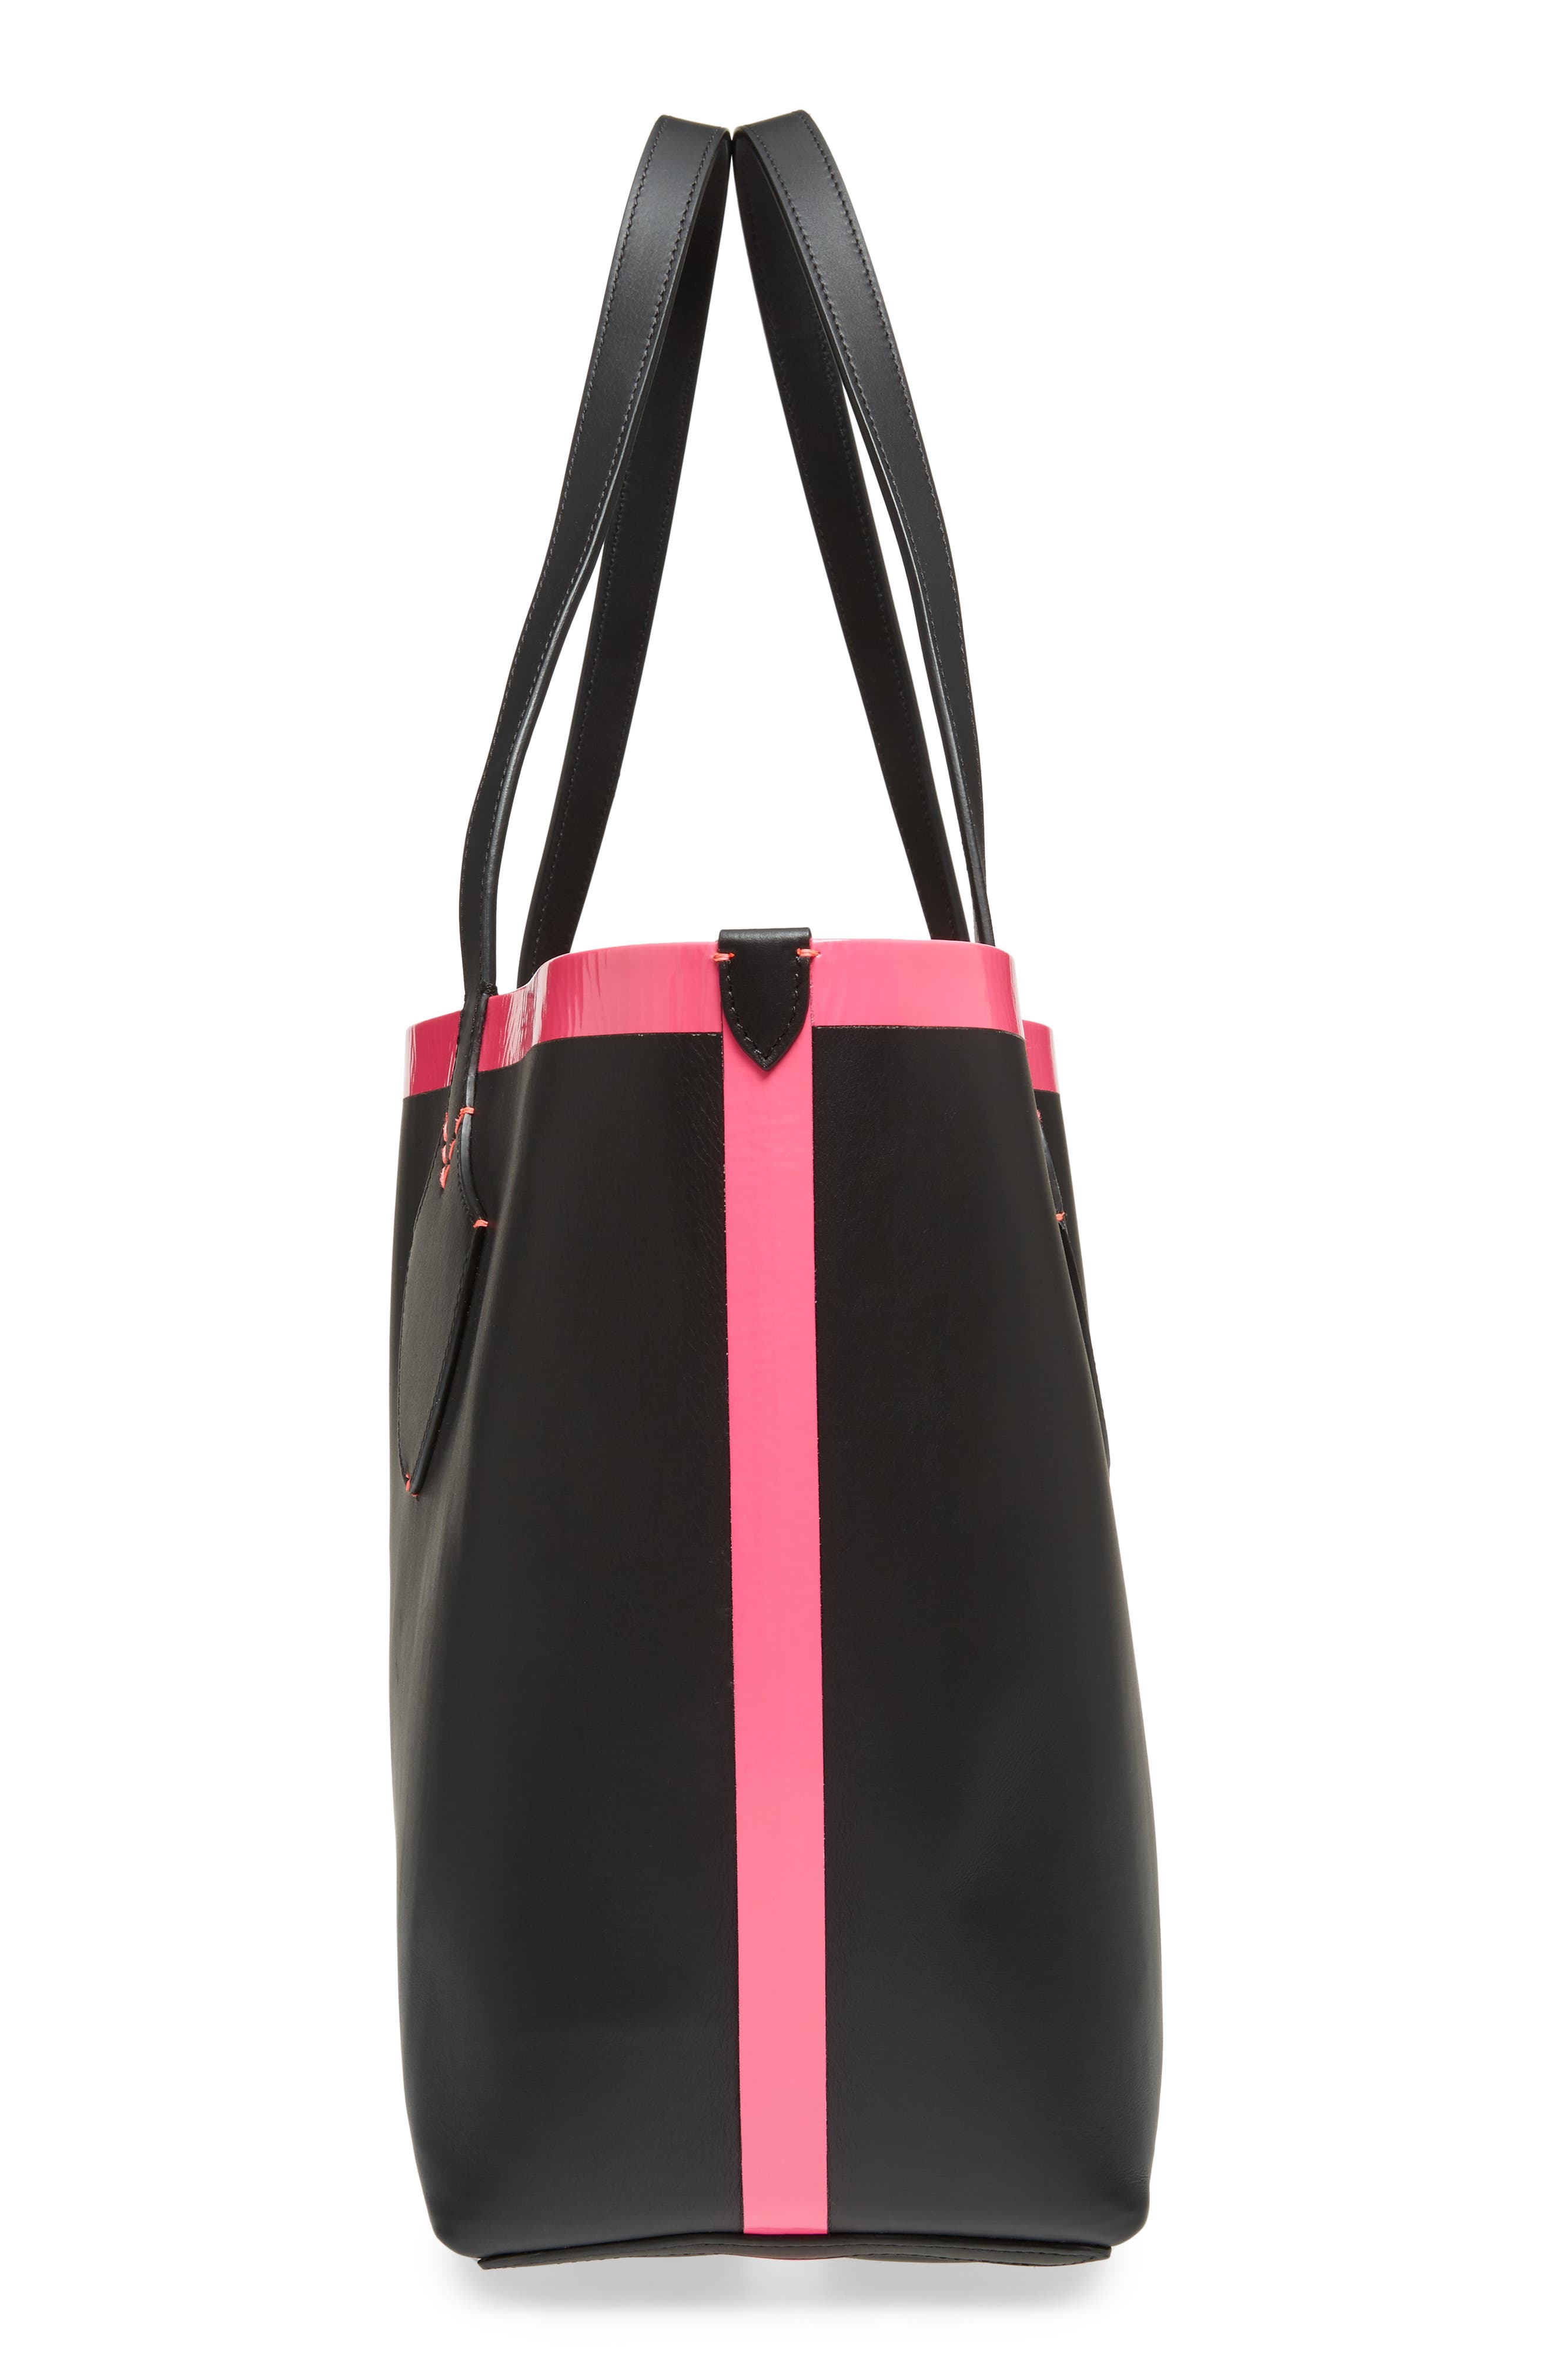 Medium Reversible Check Canvas & Leather Tote,                             Alternate thumbnail 6, color,                             Black/ Neon Pink